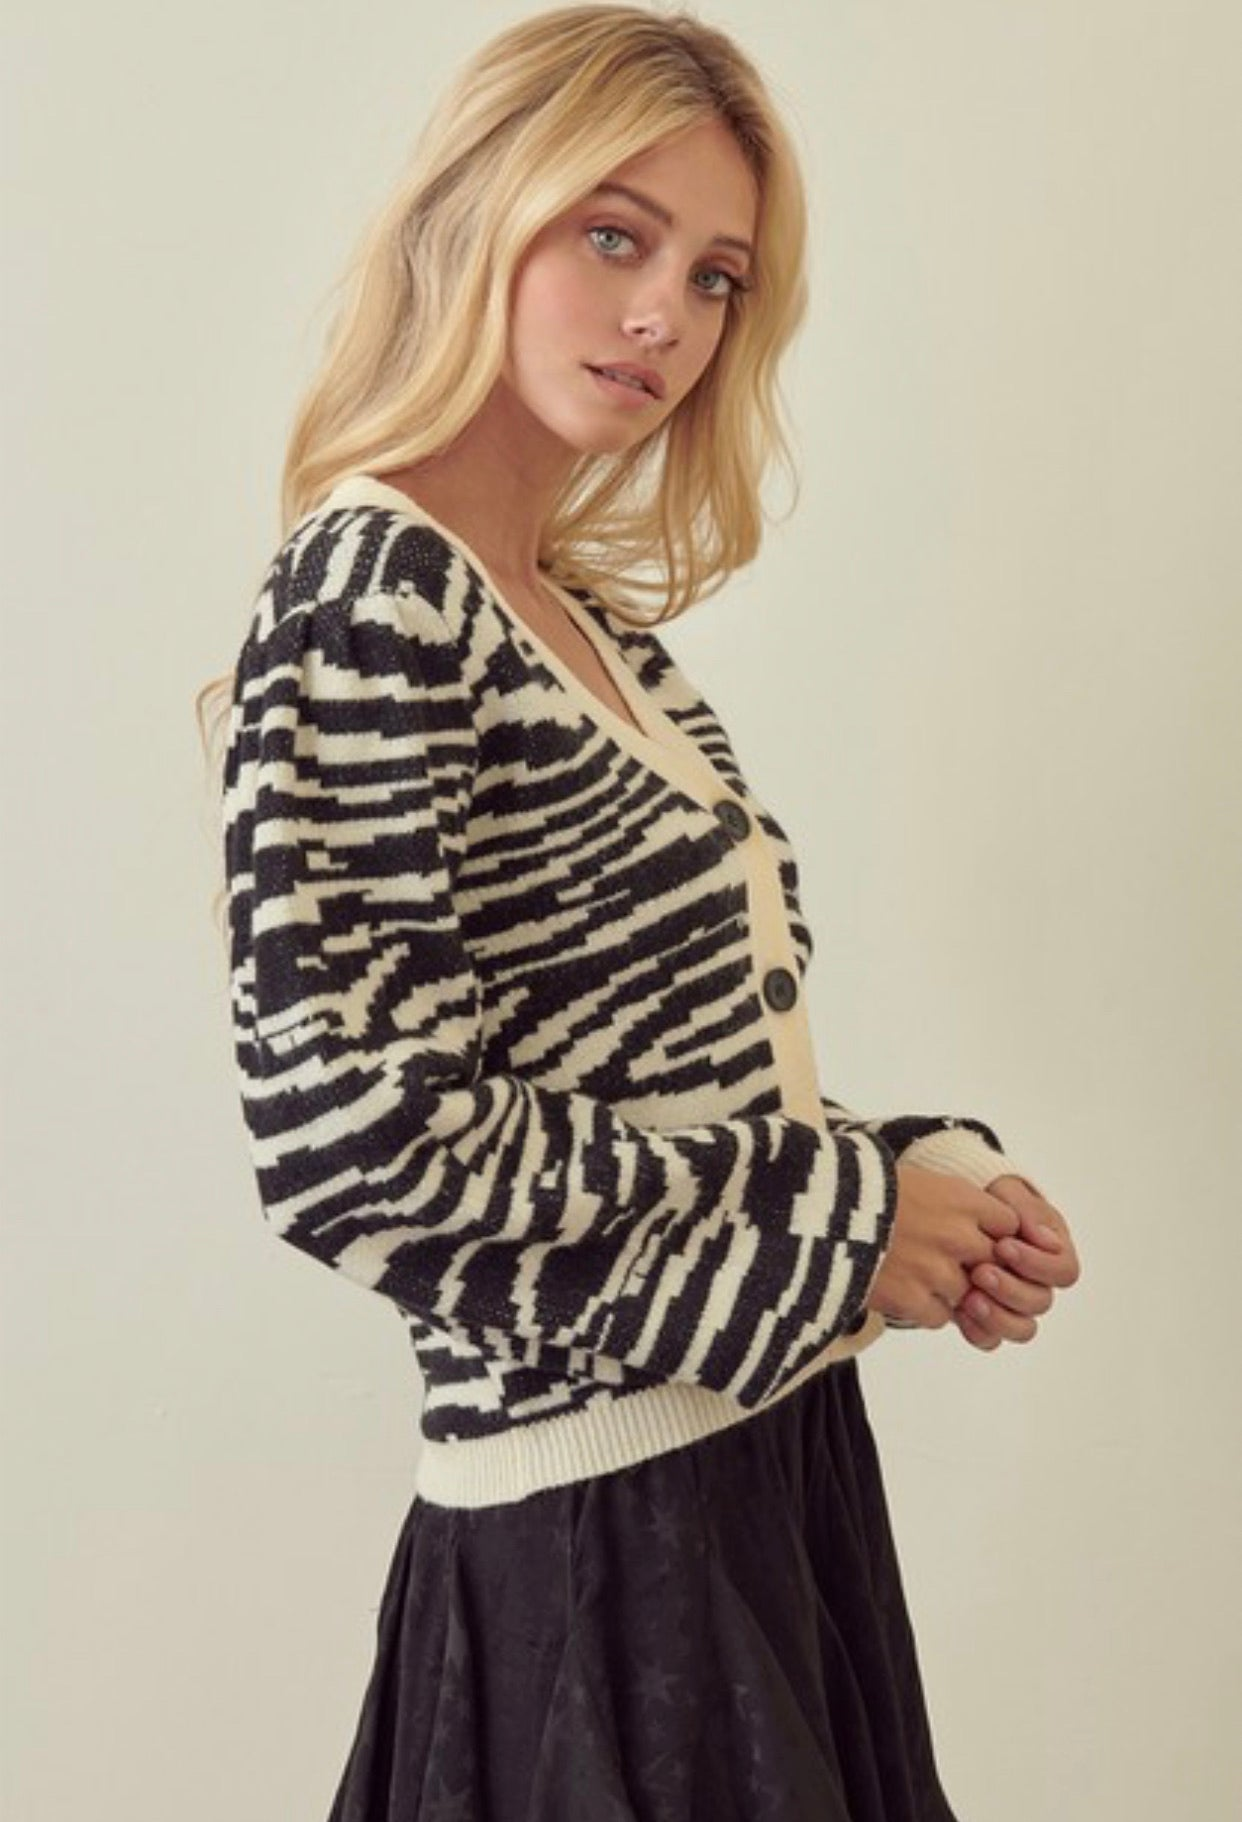 Holly Zebra Cardigan